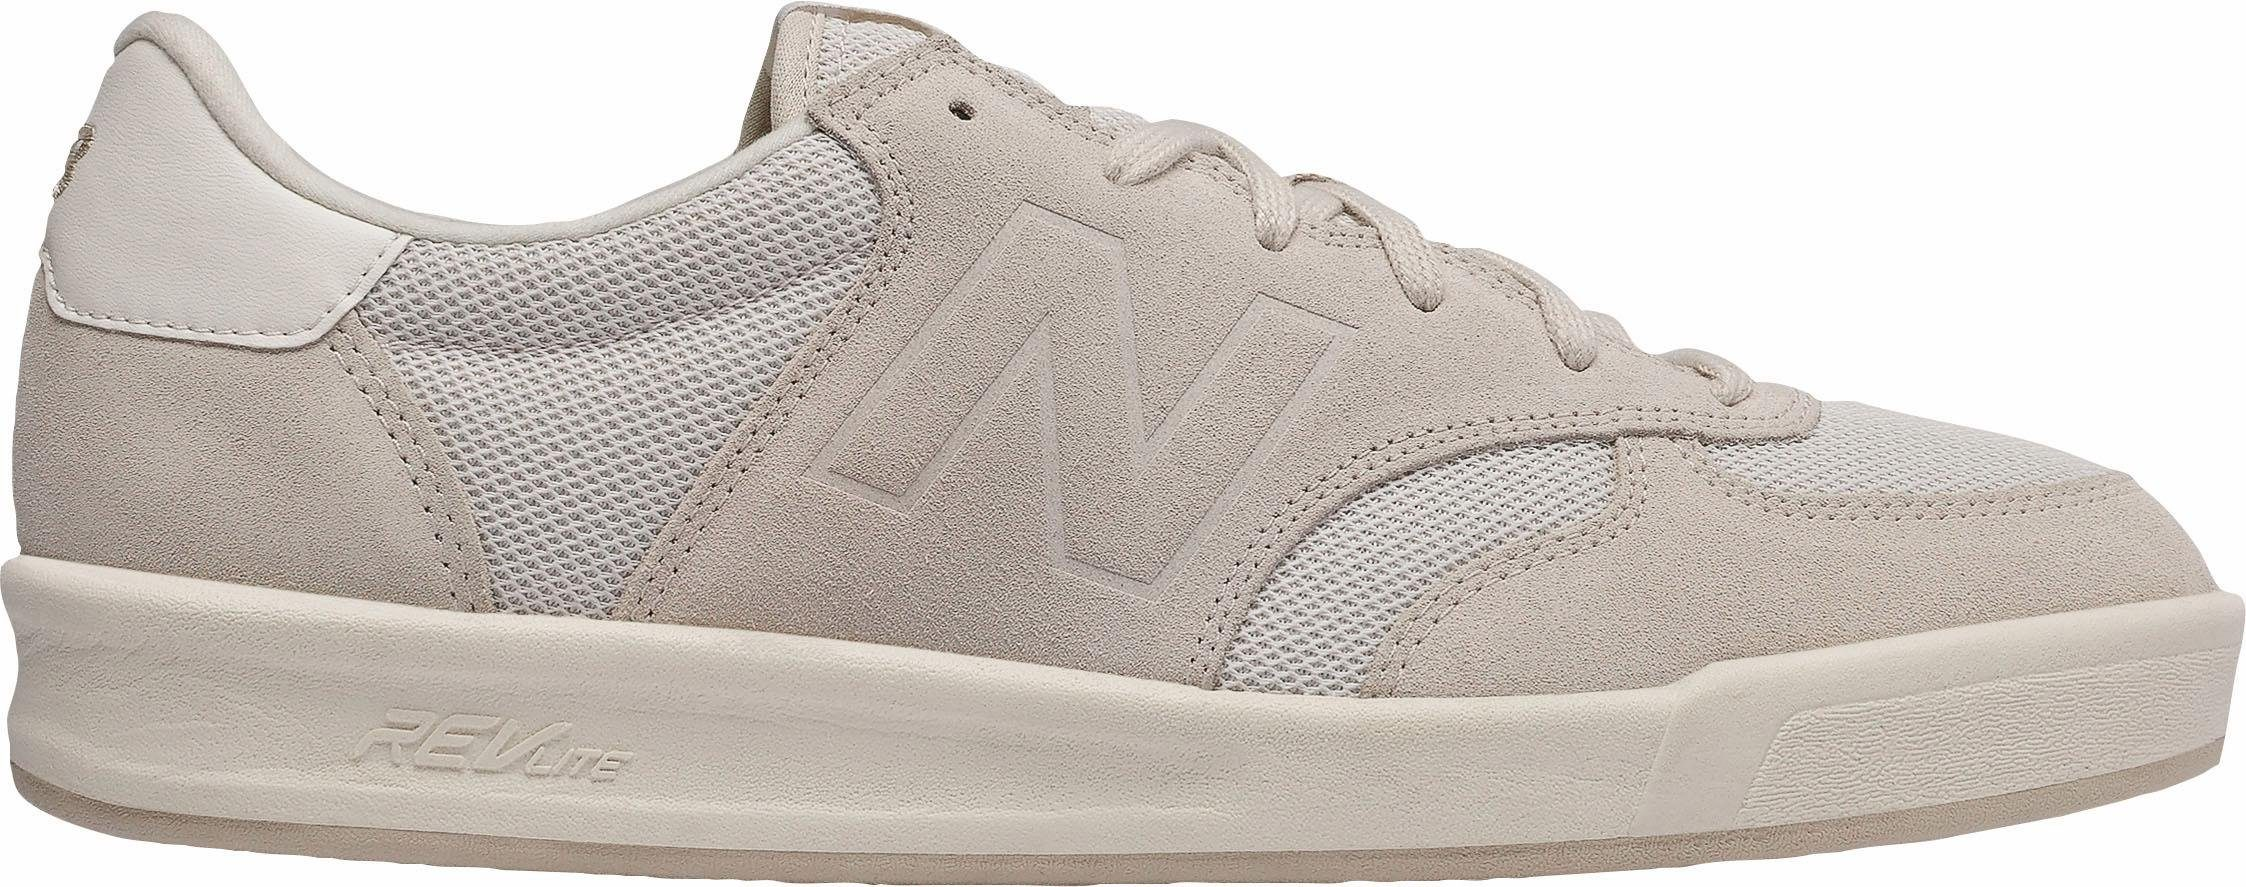 new balance beige sneakers